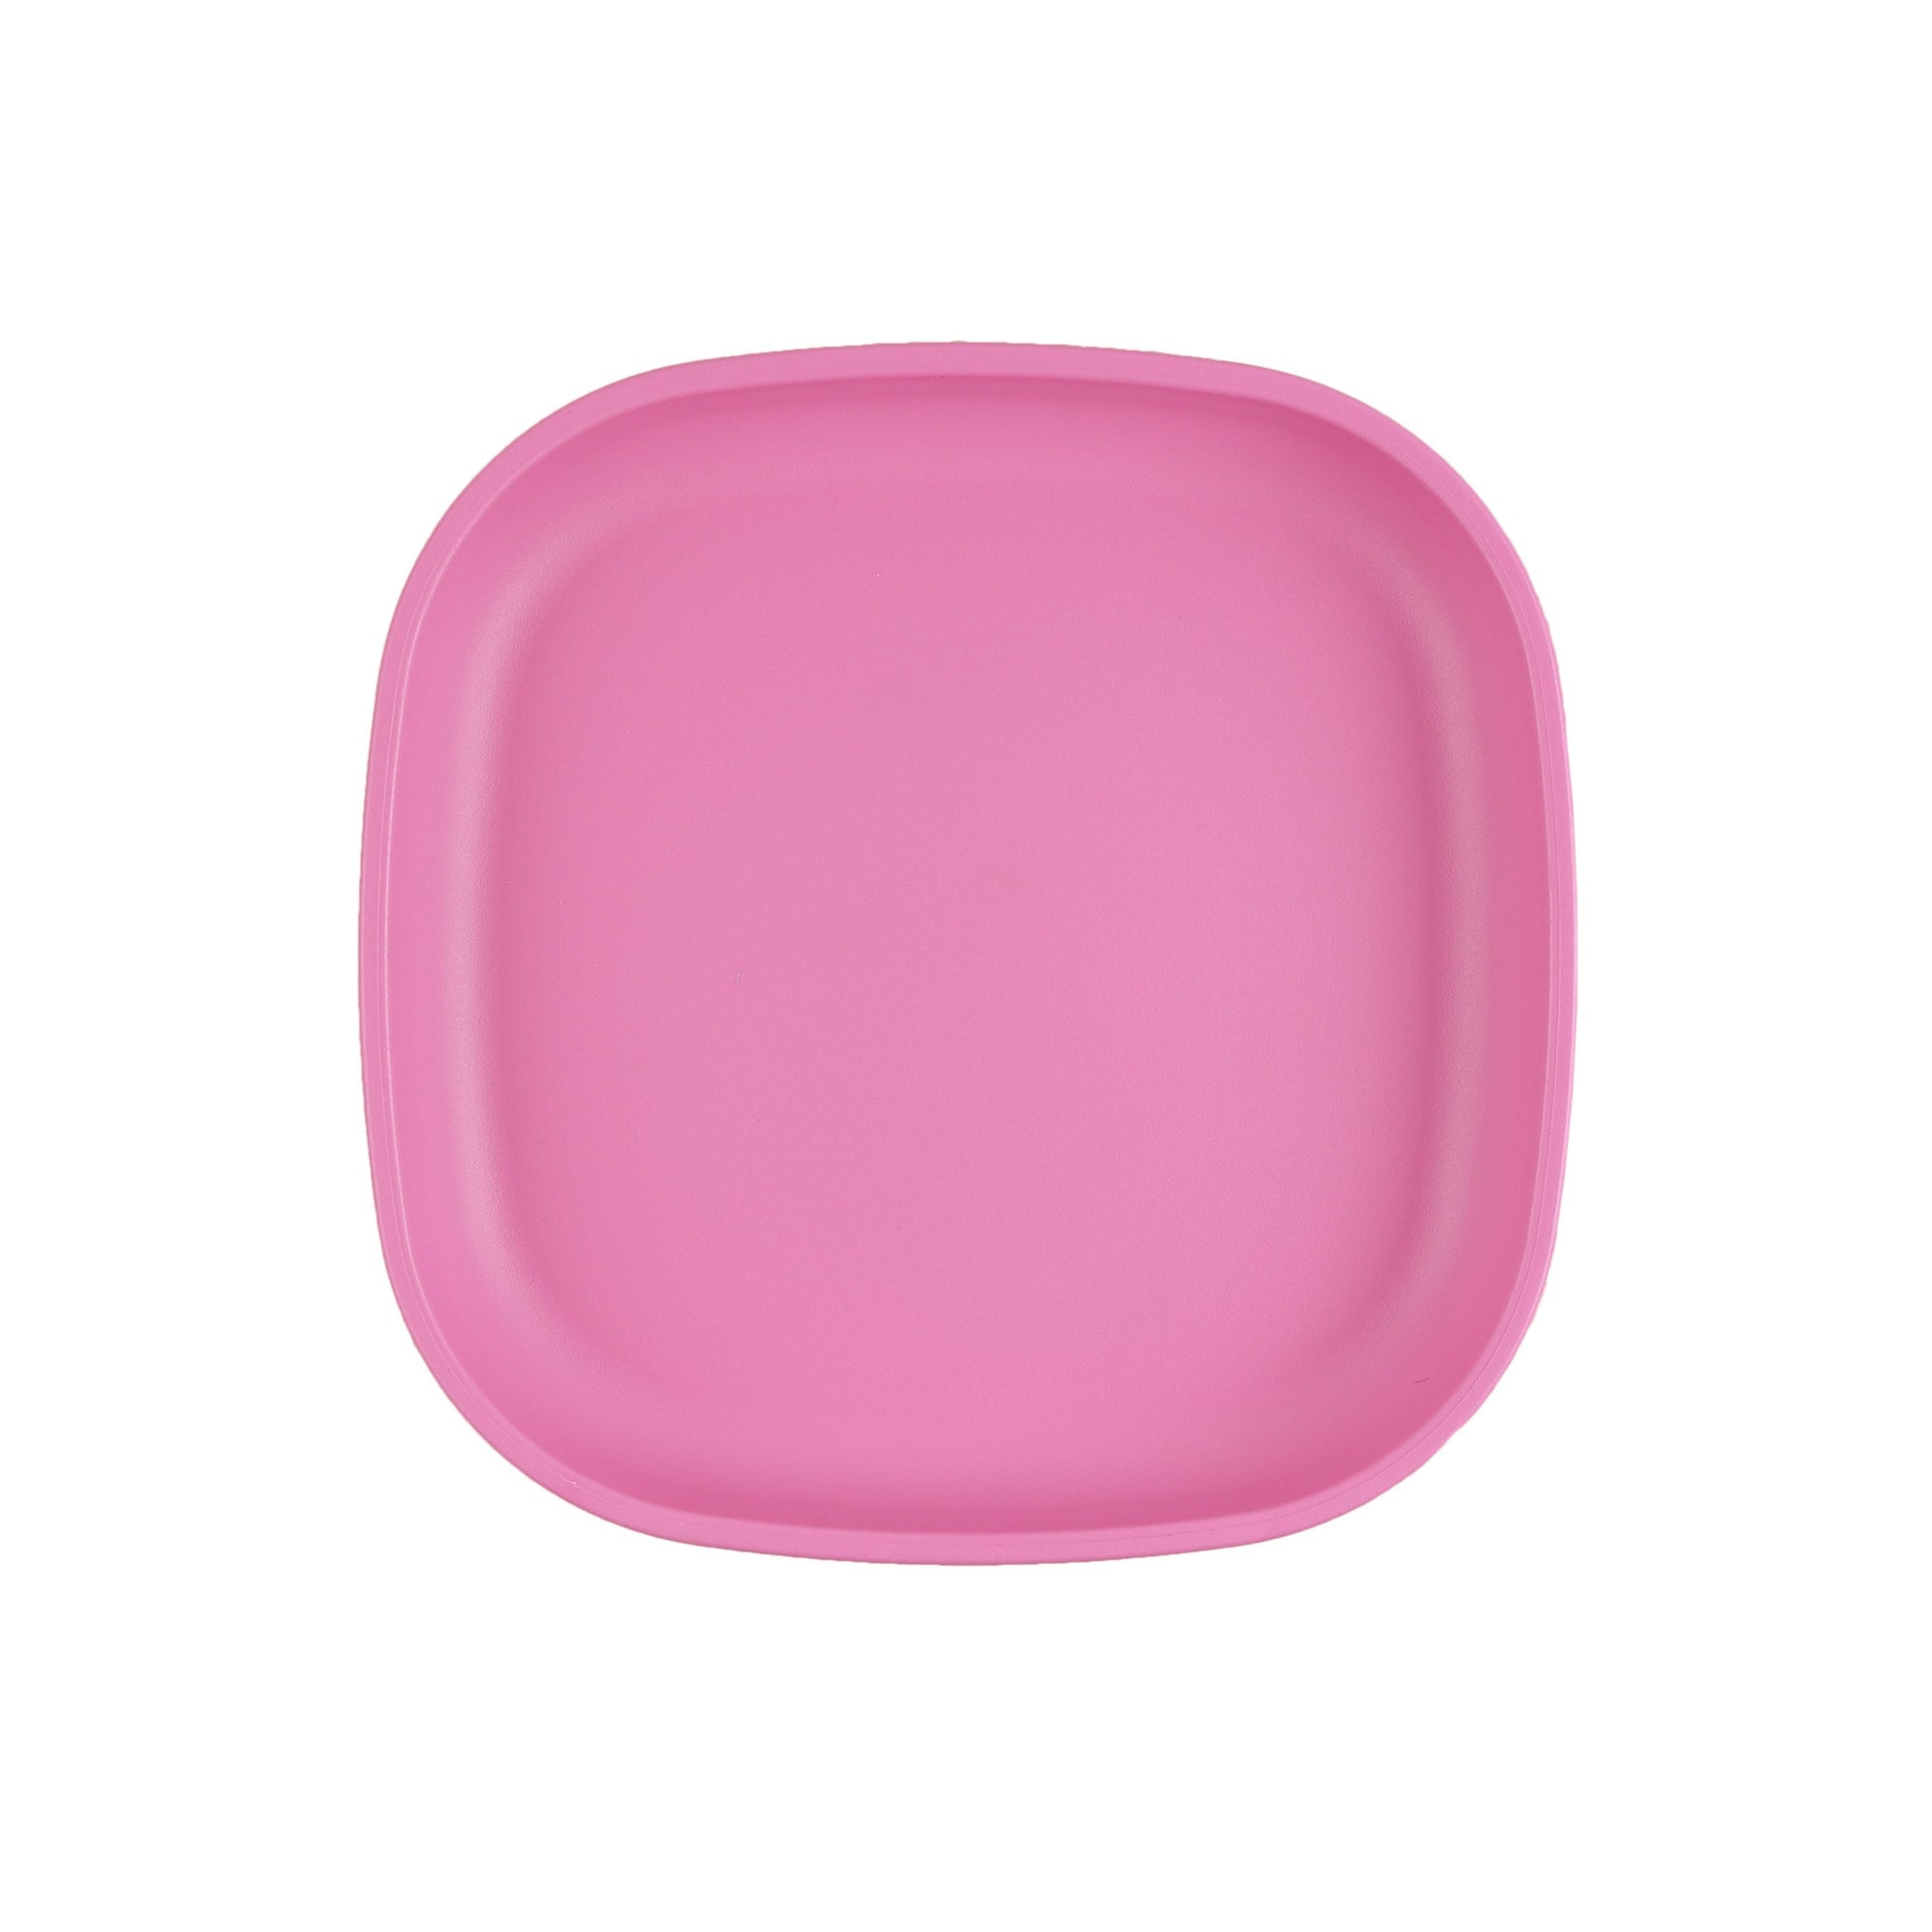 Large Flat Plate (Bright Pink)